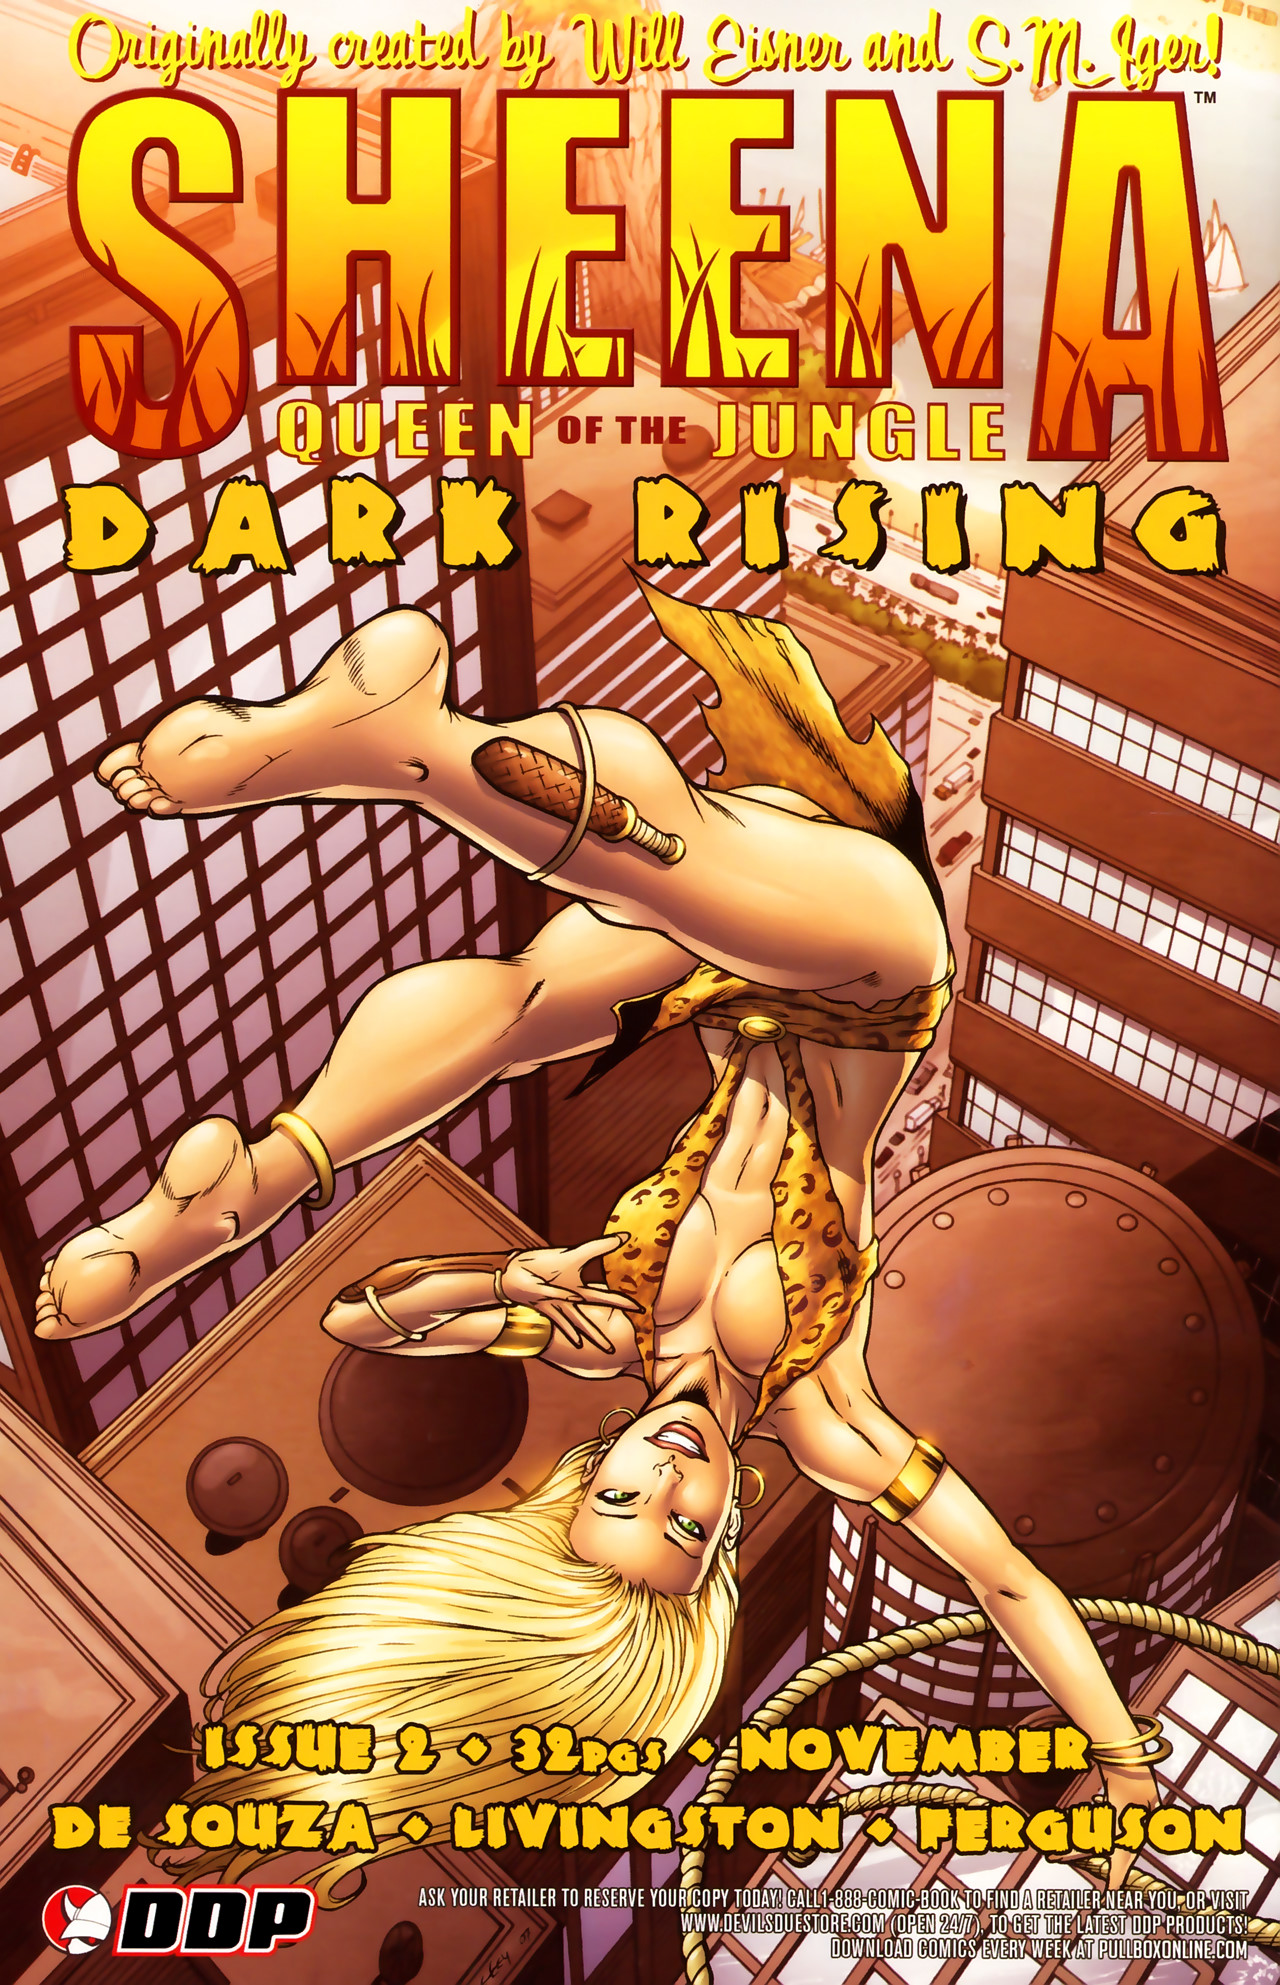 Read online Sheena Queen of the Jungle: Dark Rising comic -  Issue #1 - 25